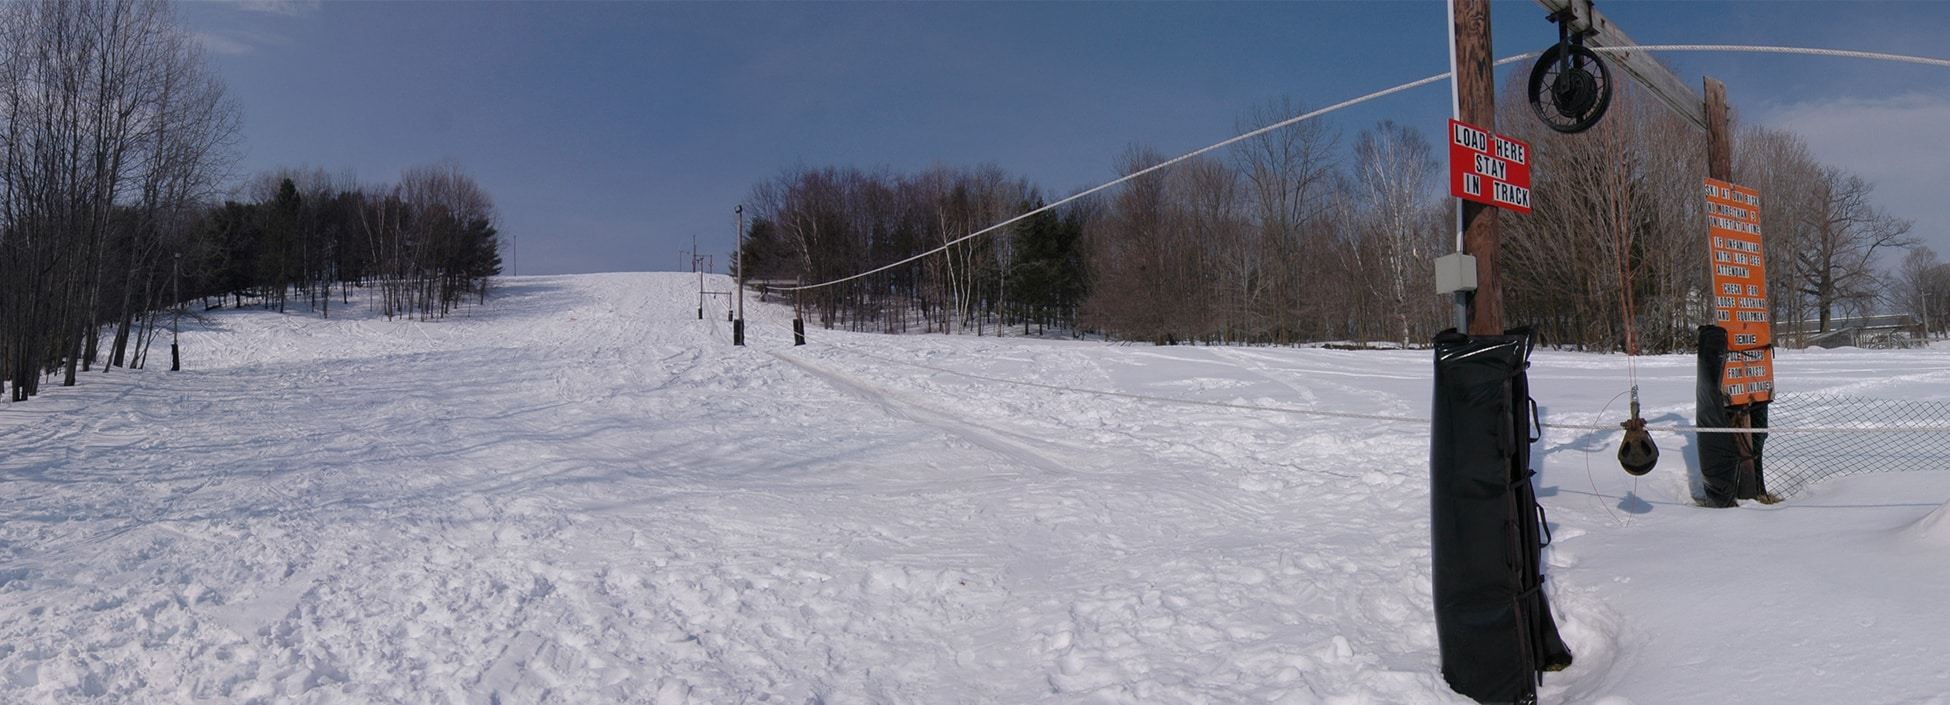 winter, ski hill, Randolph Center campus, rope tow